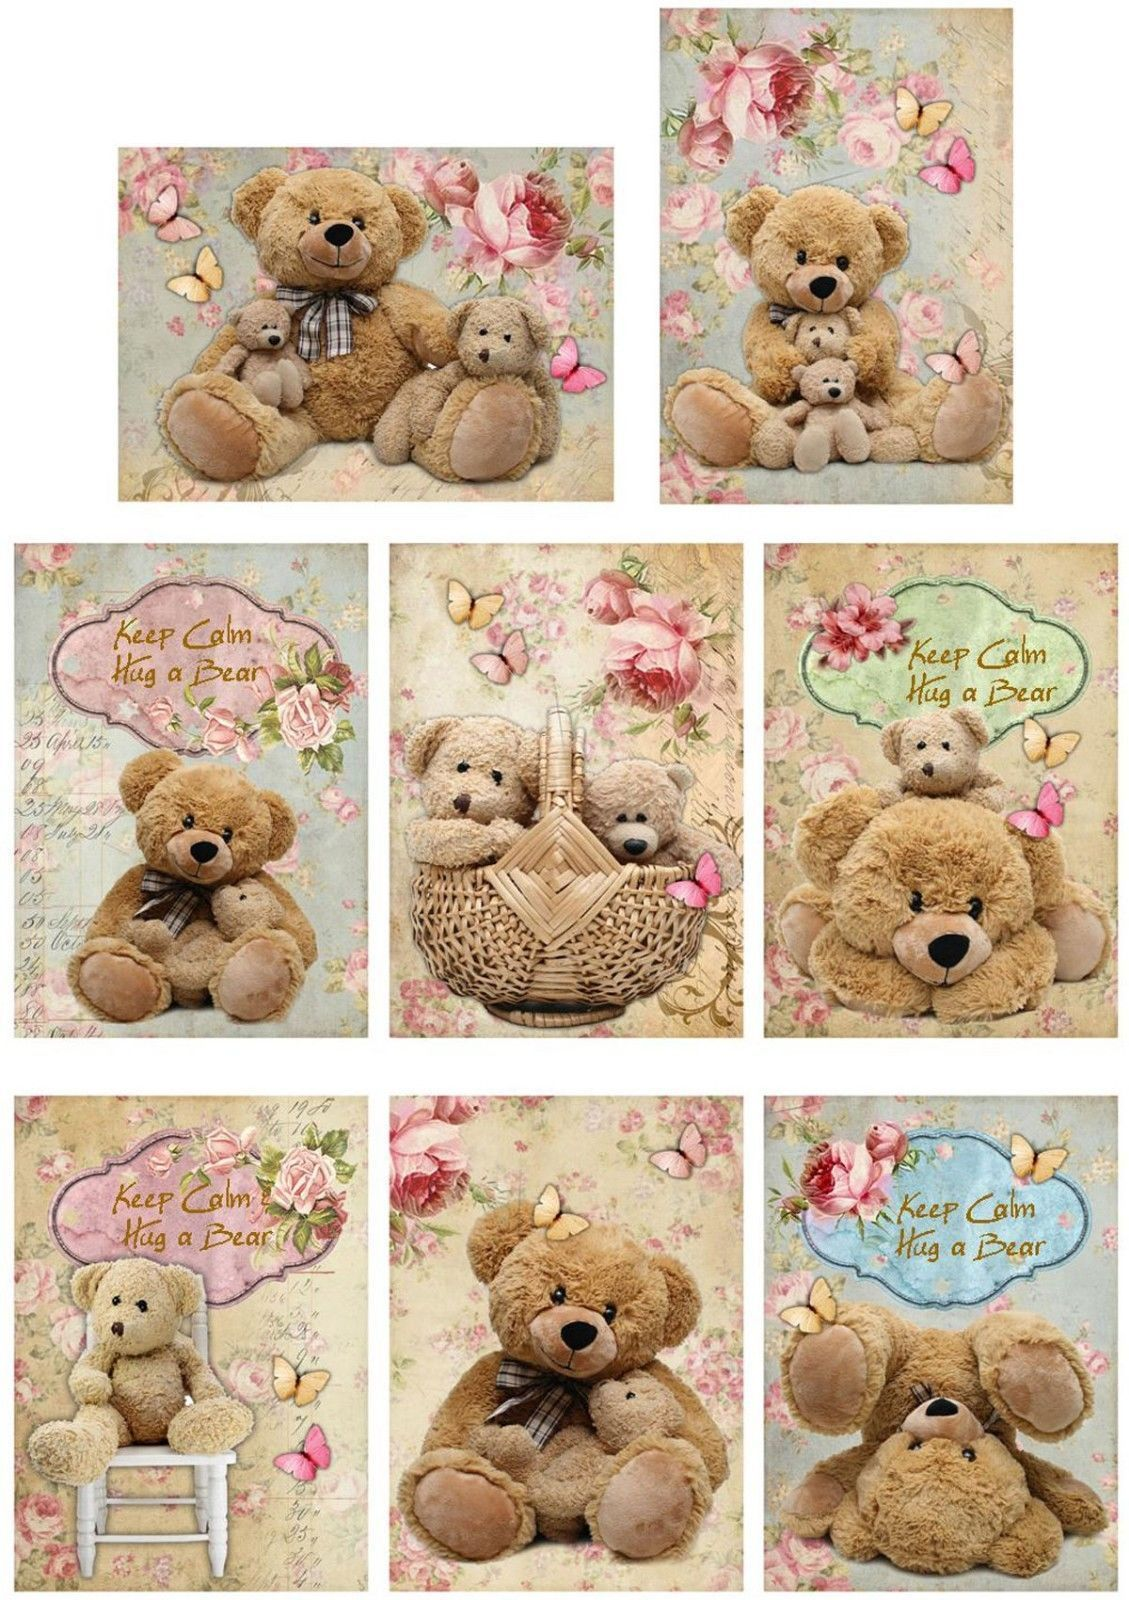 Vintage Inspired 8 Teddy Bears Keep Calm Hug A Bear Small Cards W Envelopes Printing On Fabric Teddy Small Cards